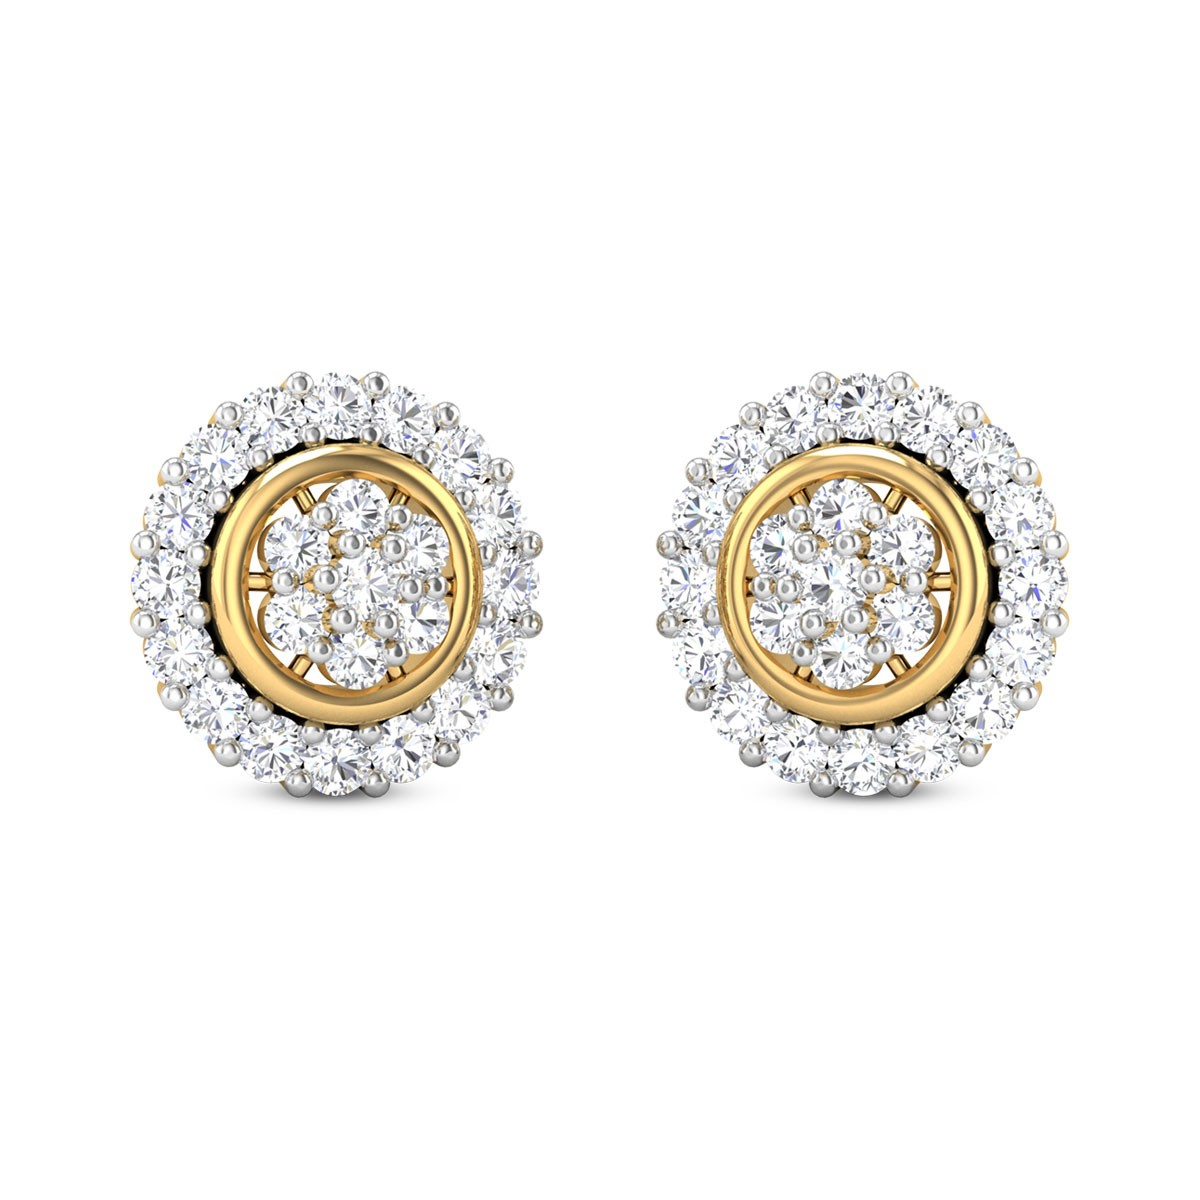 Ana Vittoria Diamond Earrings